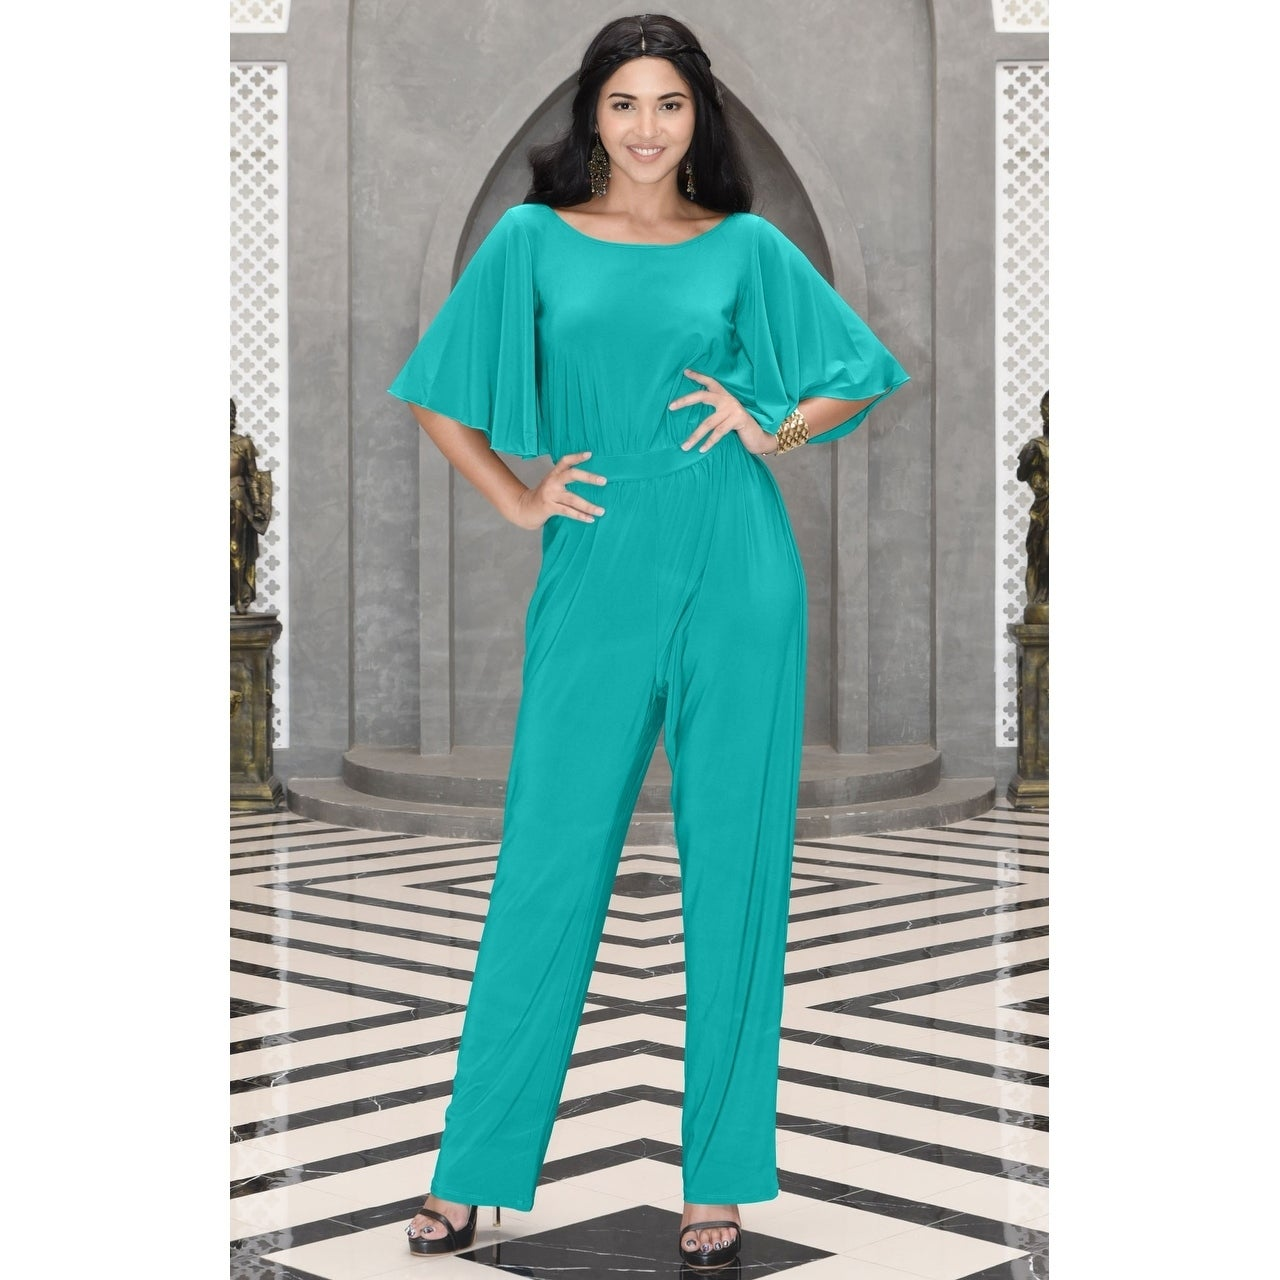 dee435dac2dc Shop KOH KOH Women s Round Neck Batwing 3 4 Sleeve Cocktail Jumpsuit - Free  Shipping On Orders Over  45 - Overstock - 10910390